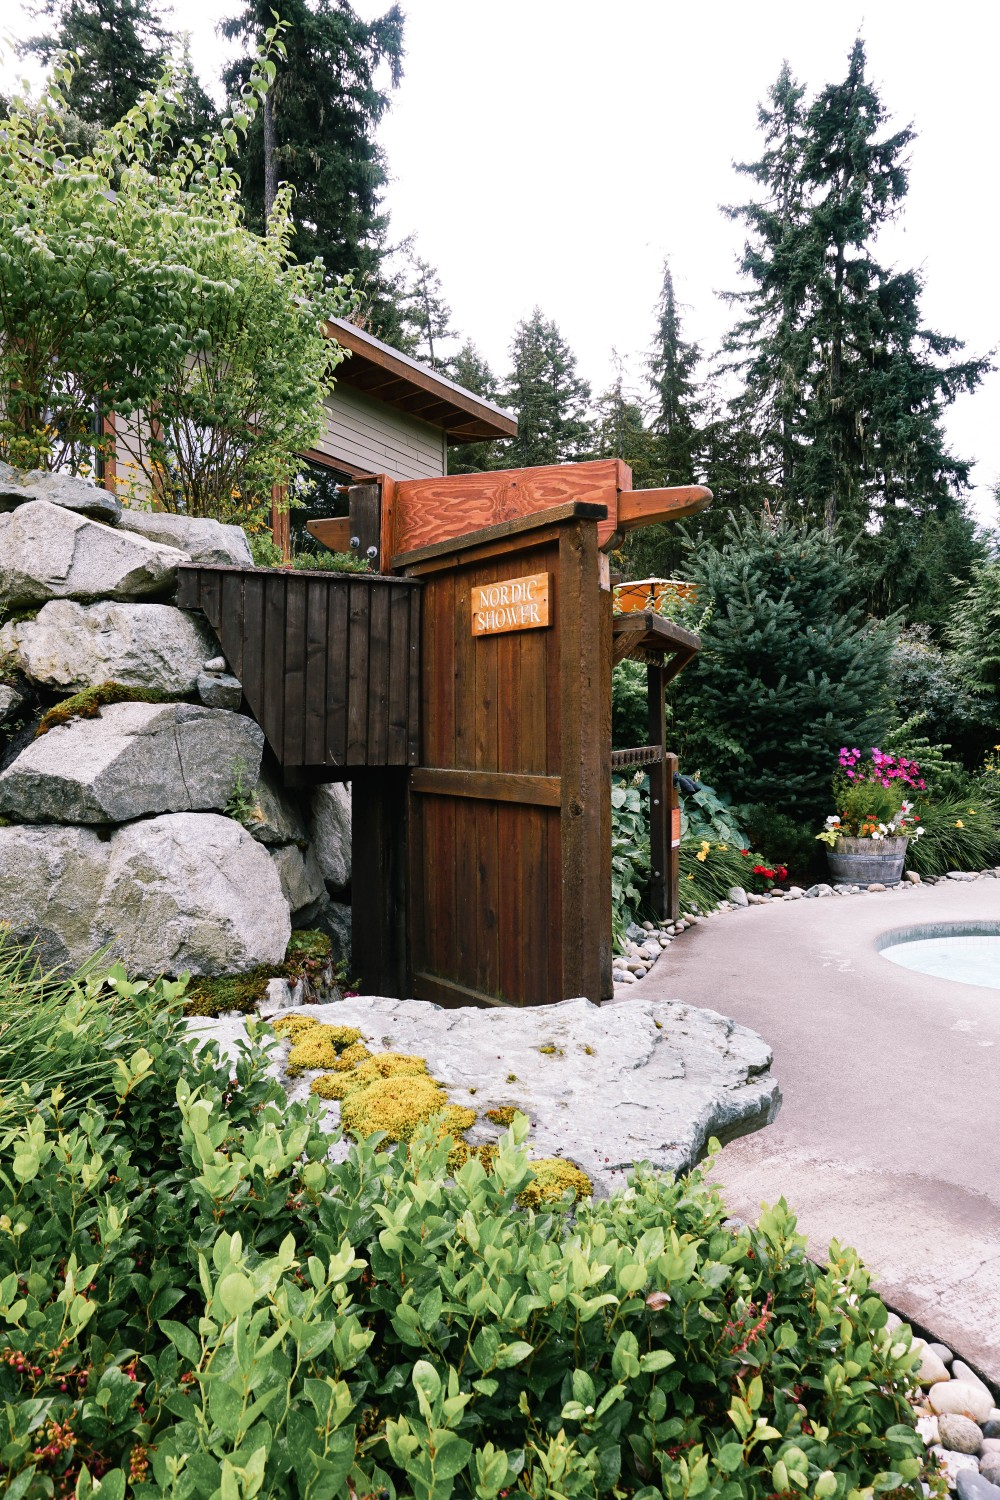 Scandinave Spa-Best Spa in Whistler-Visiting Whistler-Whistler Vacation-Summer in Whistler-Have Need Want-Scandinavian Baths 5